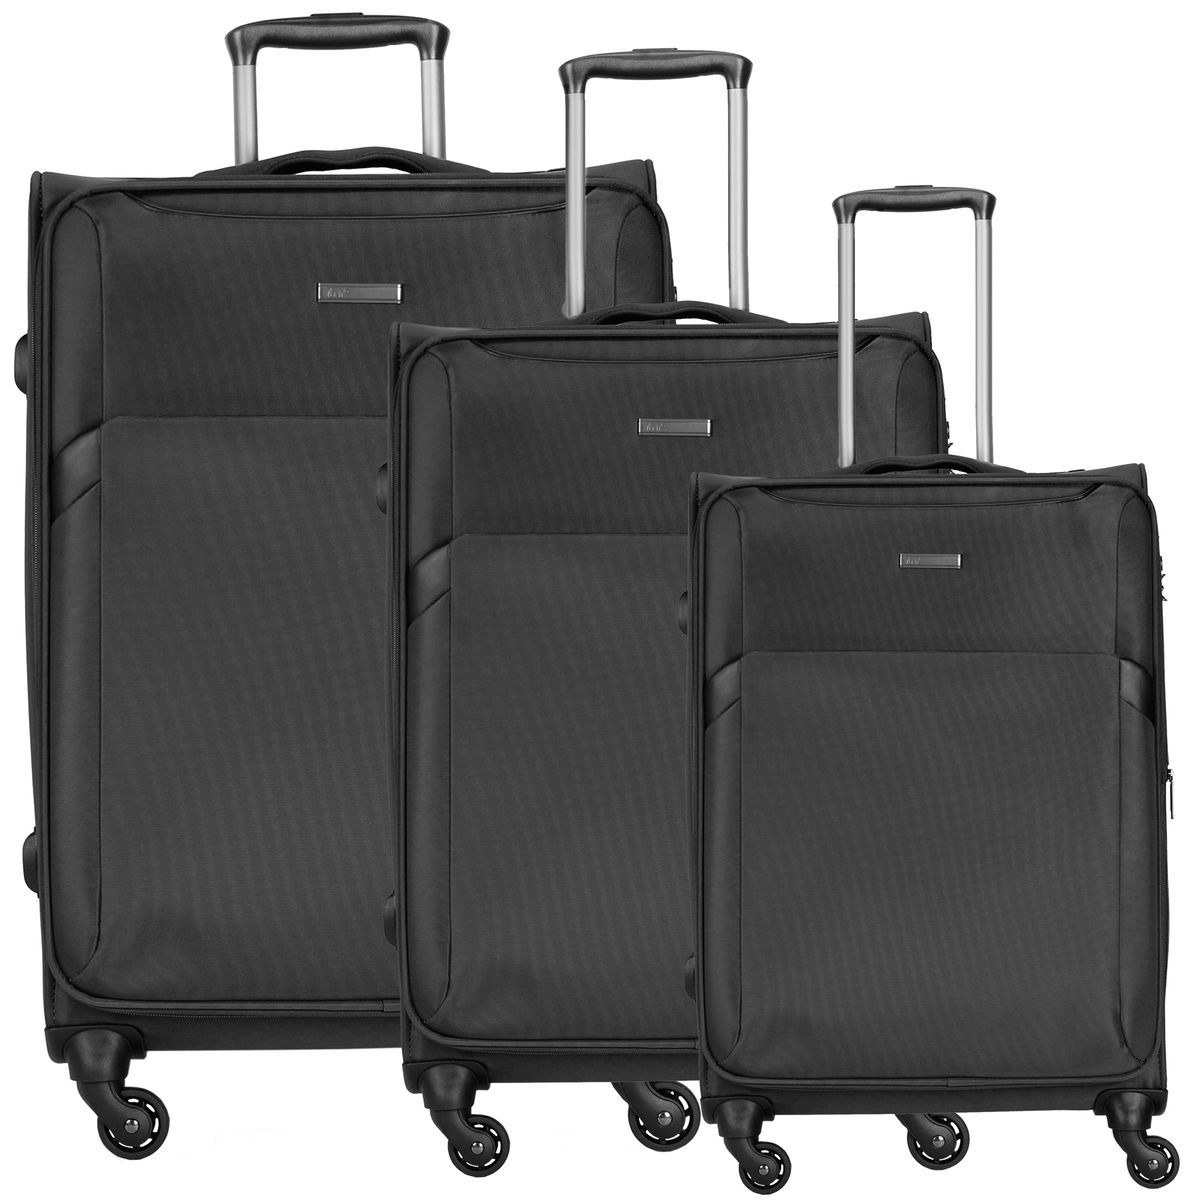 d & n Travel Line 7600 4-Rollen Trolley Set 3-tlg., schwarz